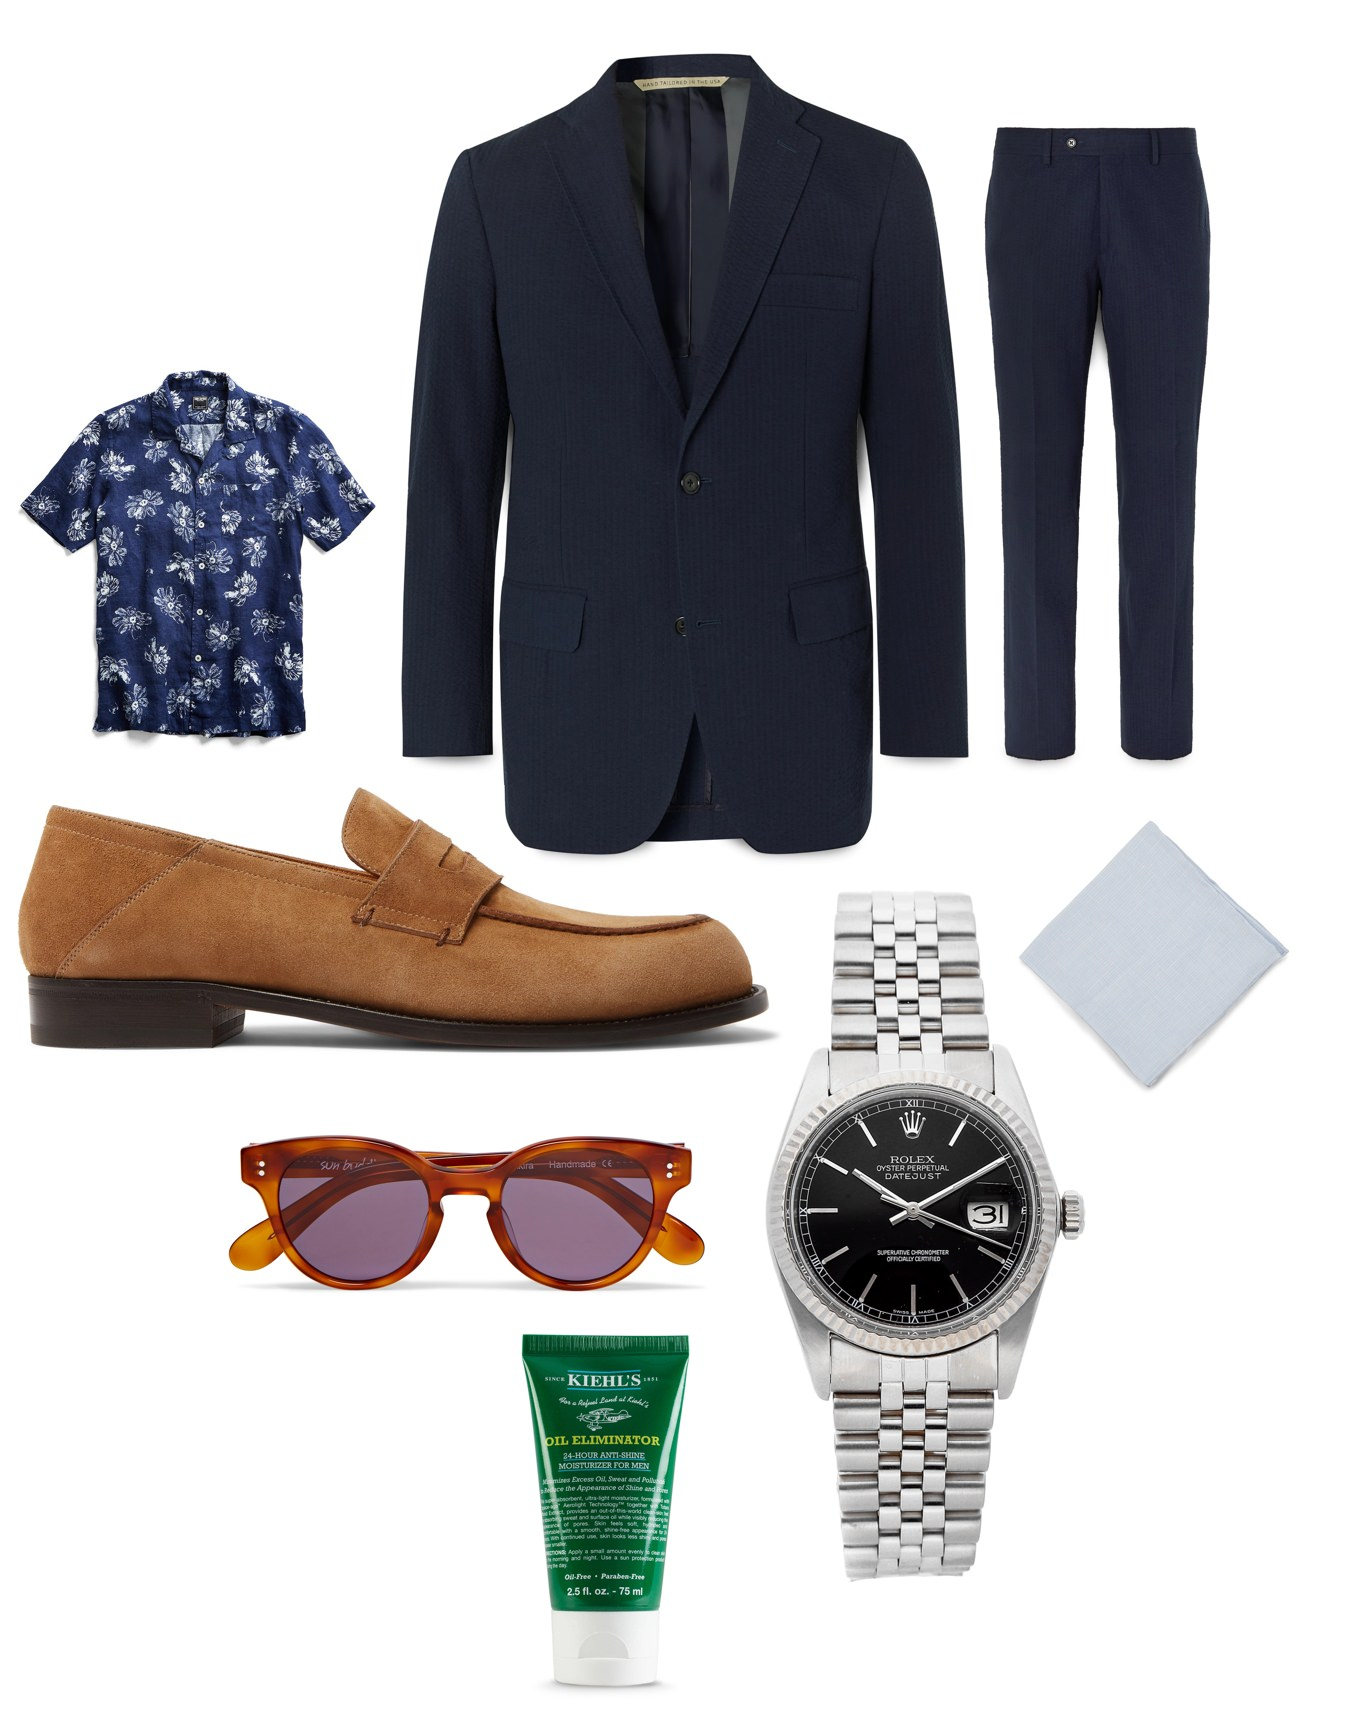 Men's spring and summer wedding outfit inspiration